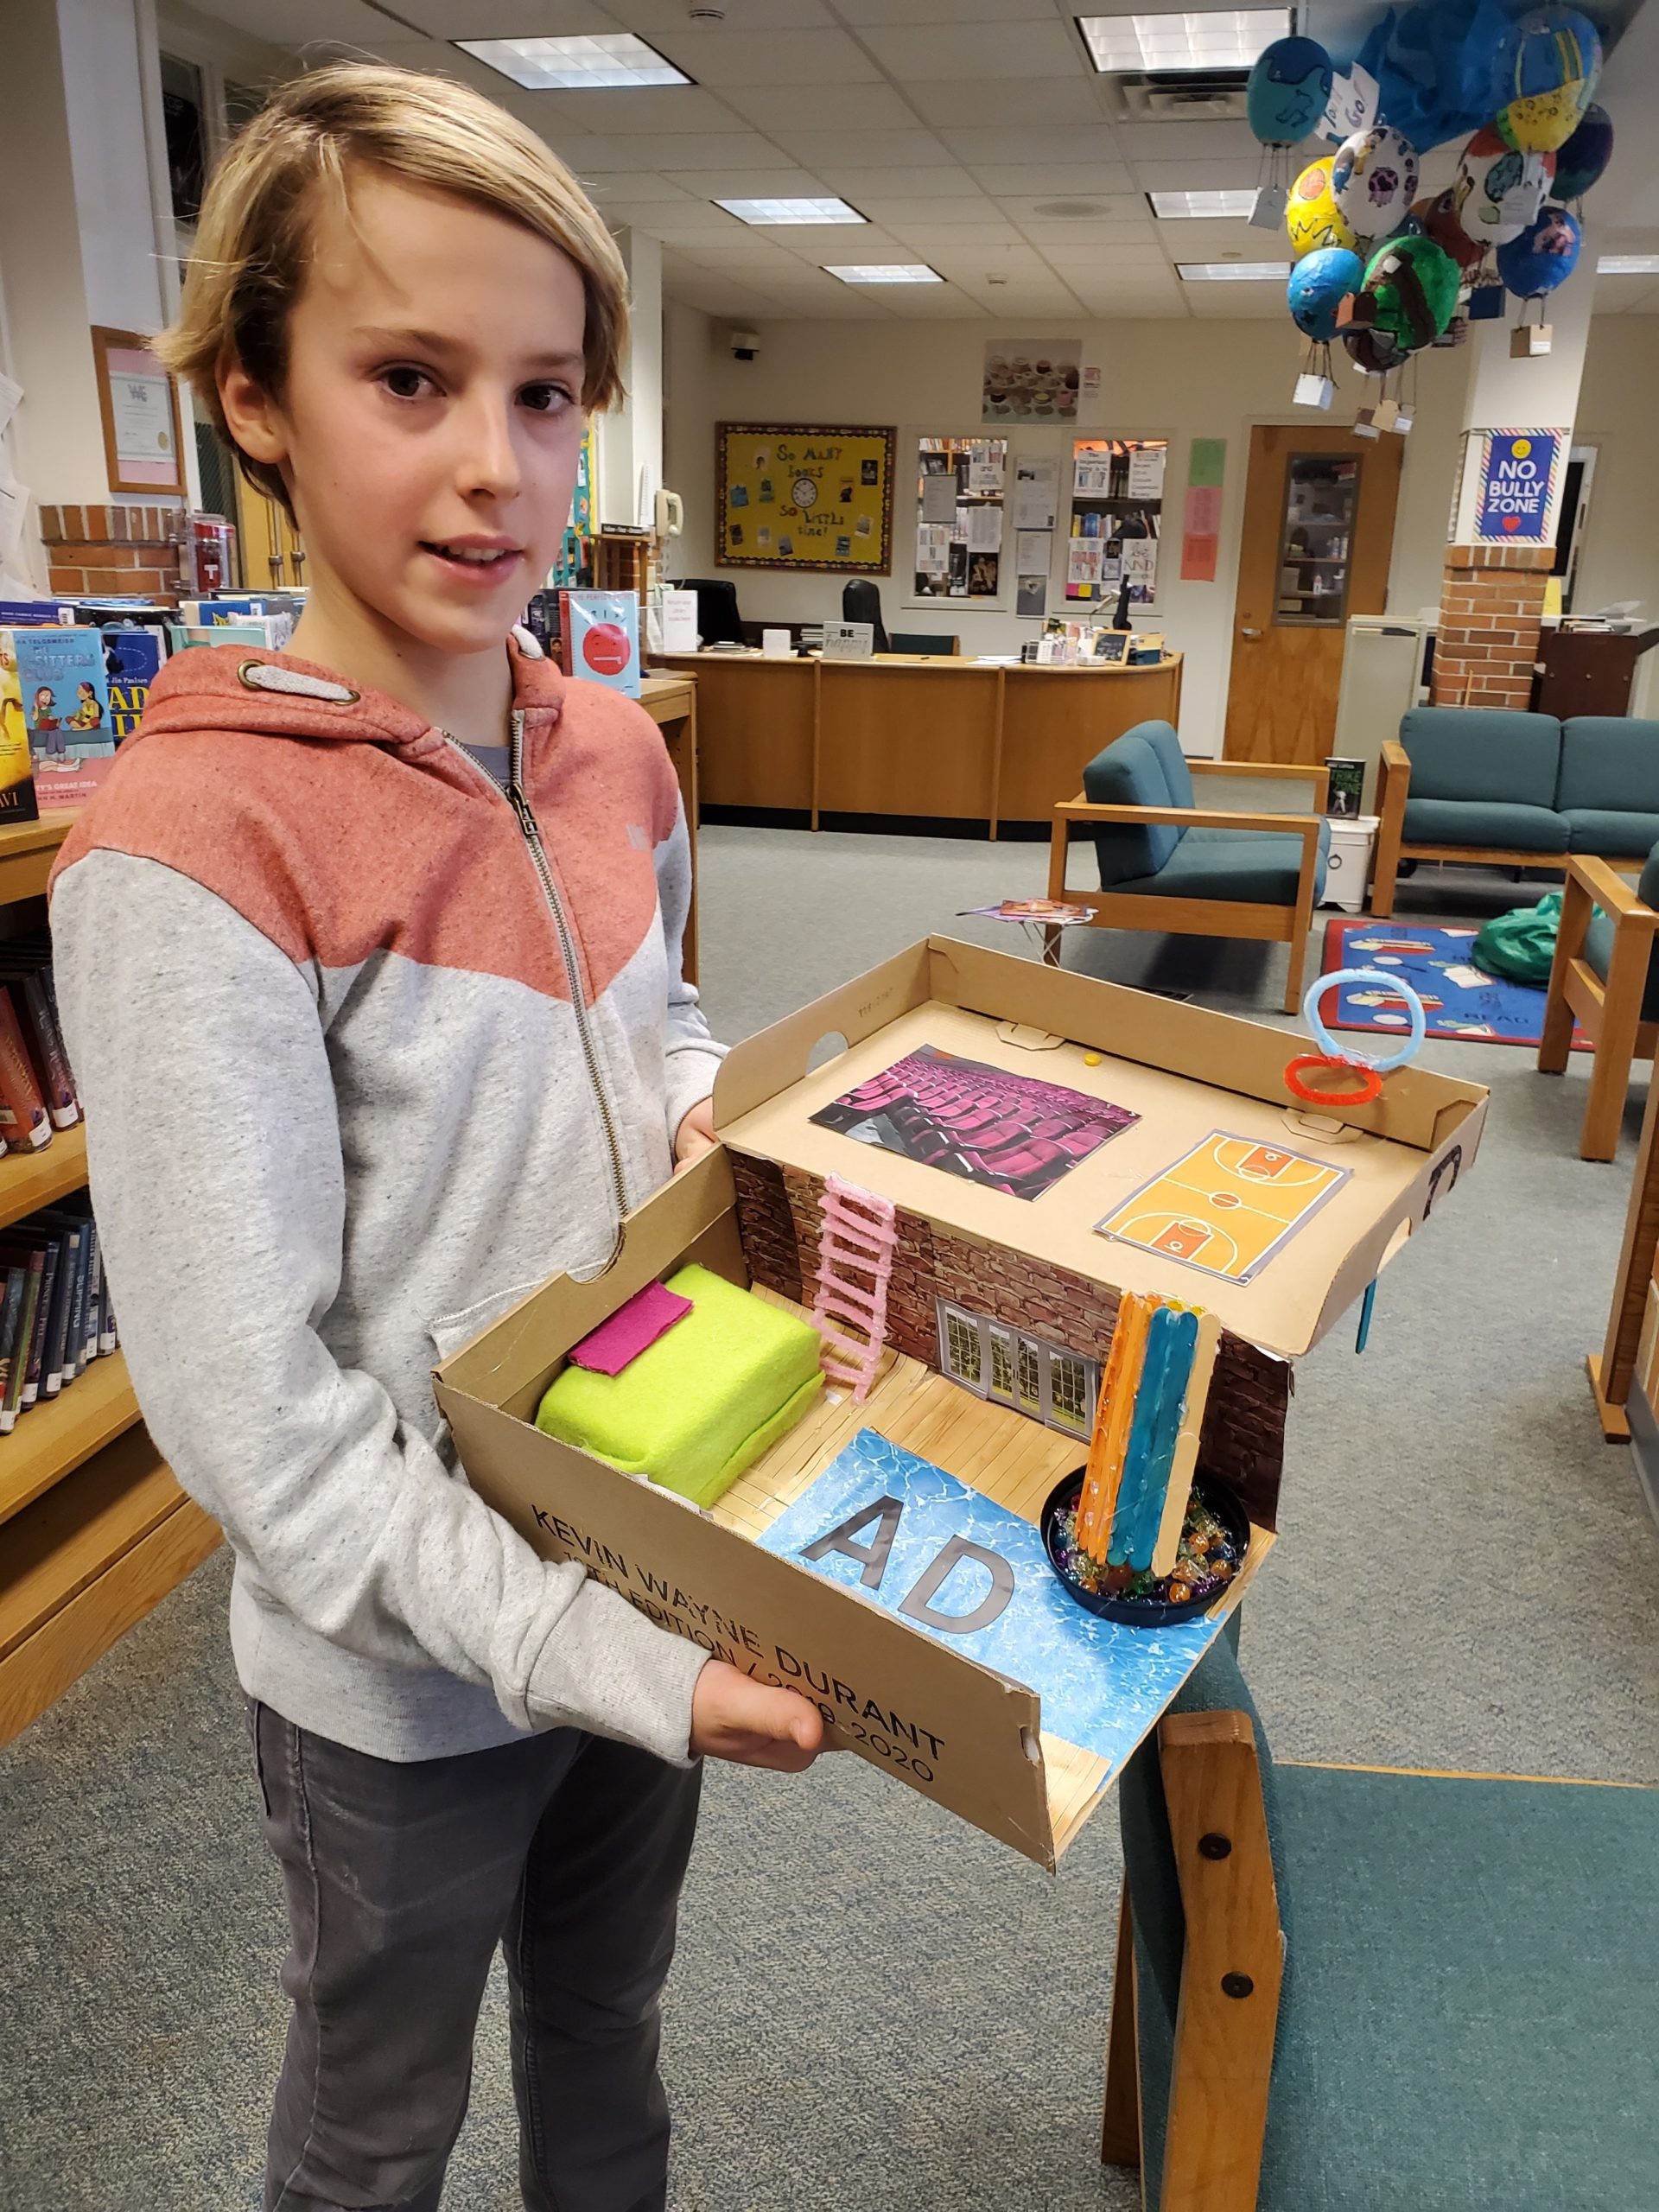 Westhampton Beach Middle School student Adrien Dellaert shows of his design, the result of a project in which students were asked to create their dream bedroom inside a shoebox.